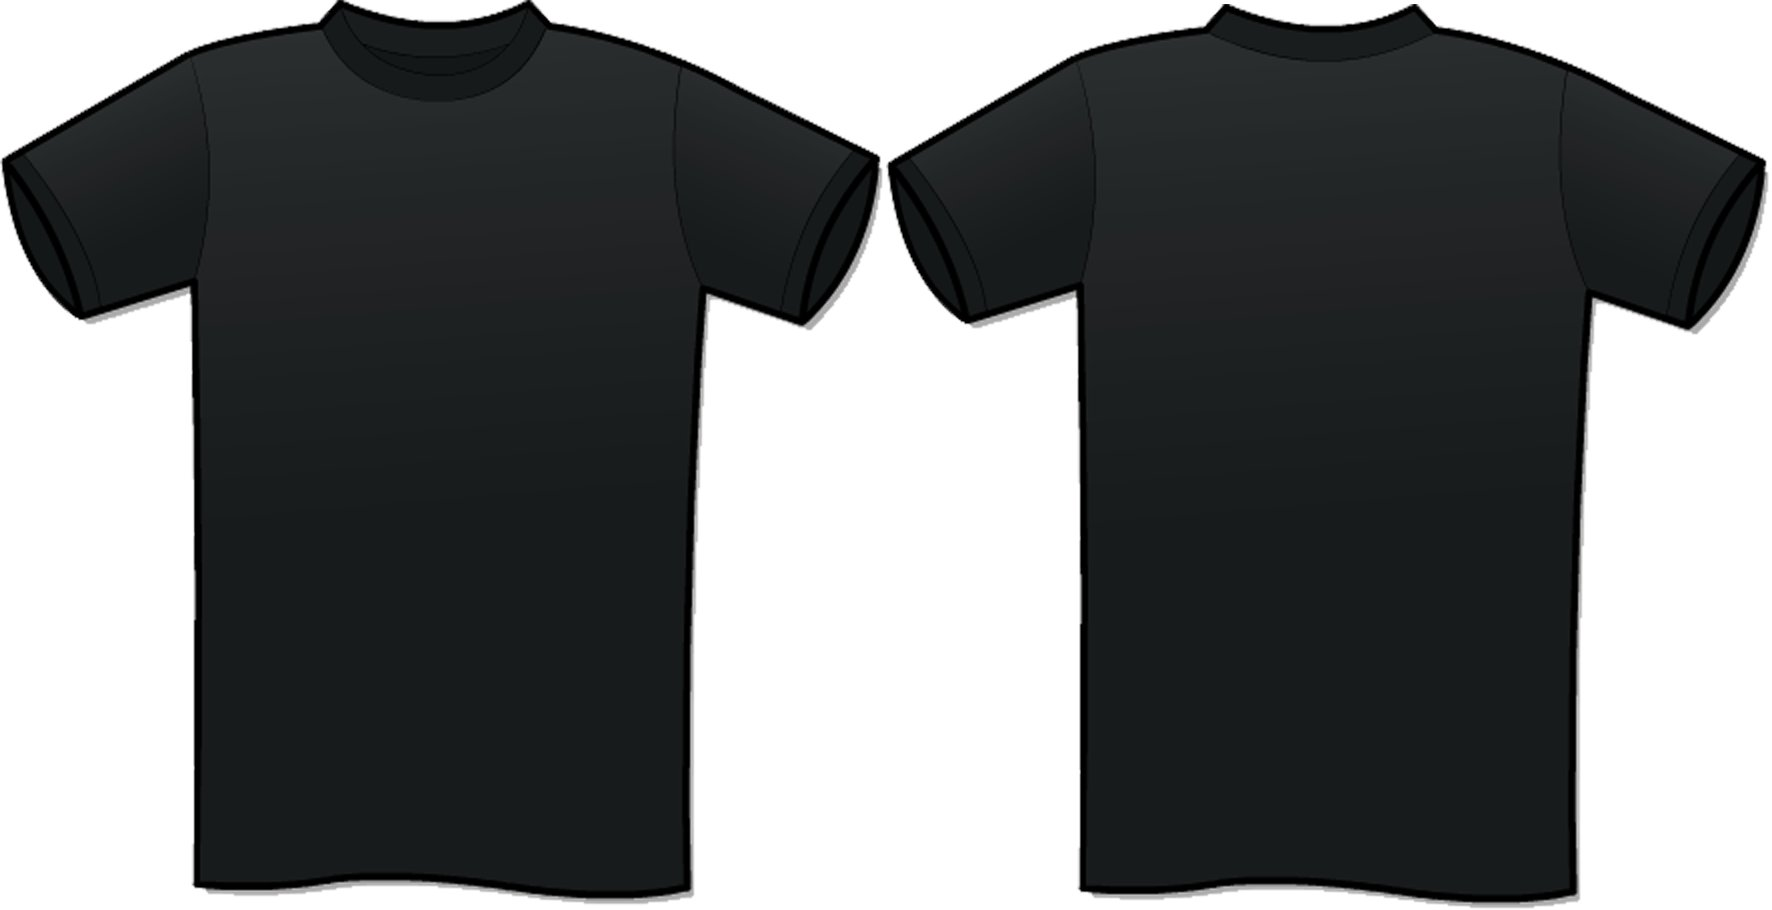 Black t shirt template for photoshop - Black T Shirt Template For Photoshop Template Psd Images White T Shirt Download